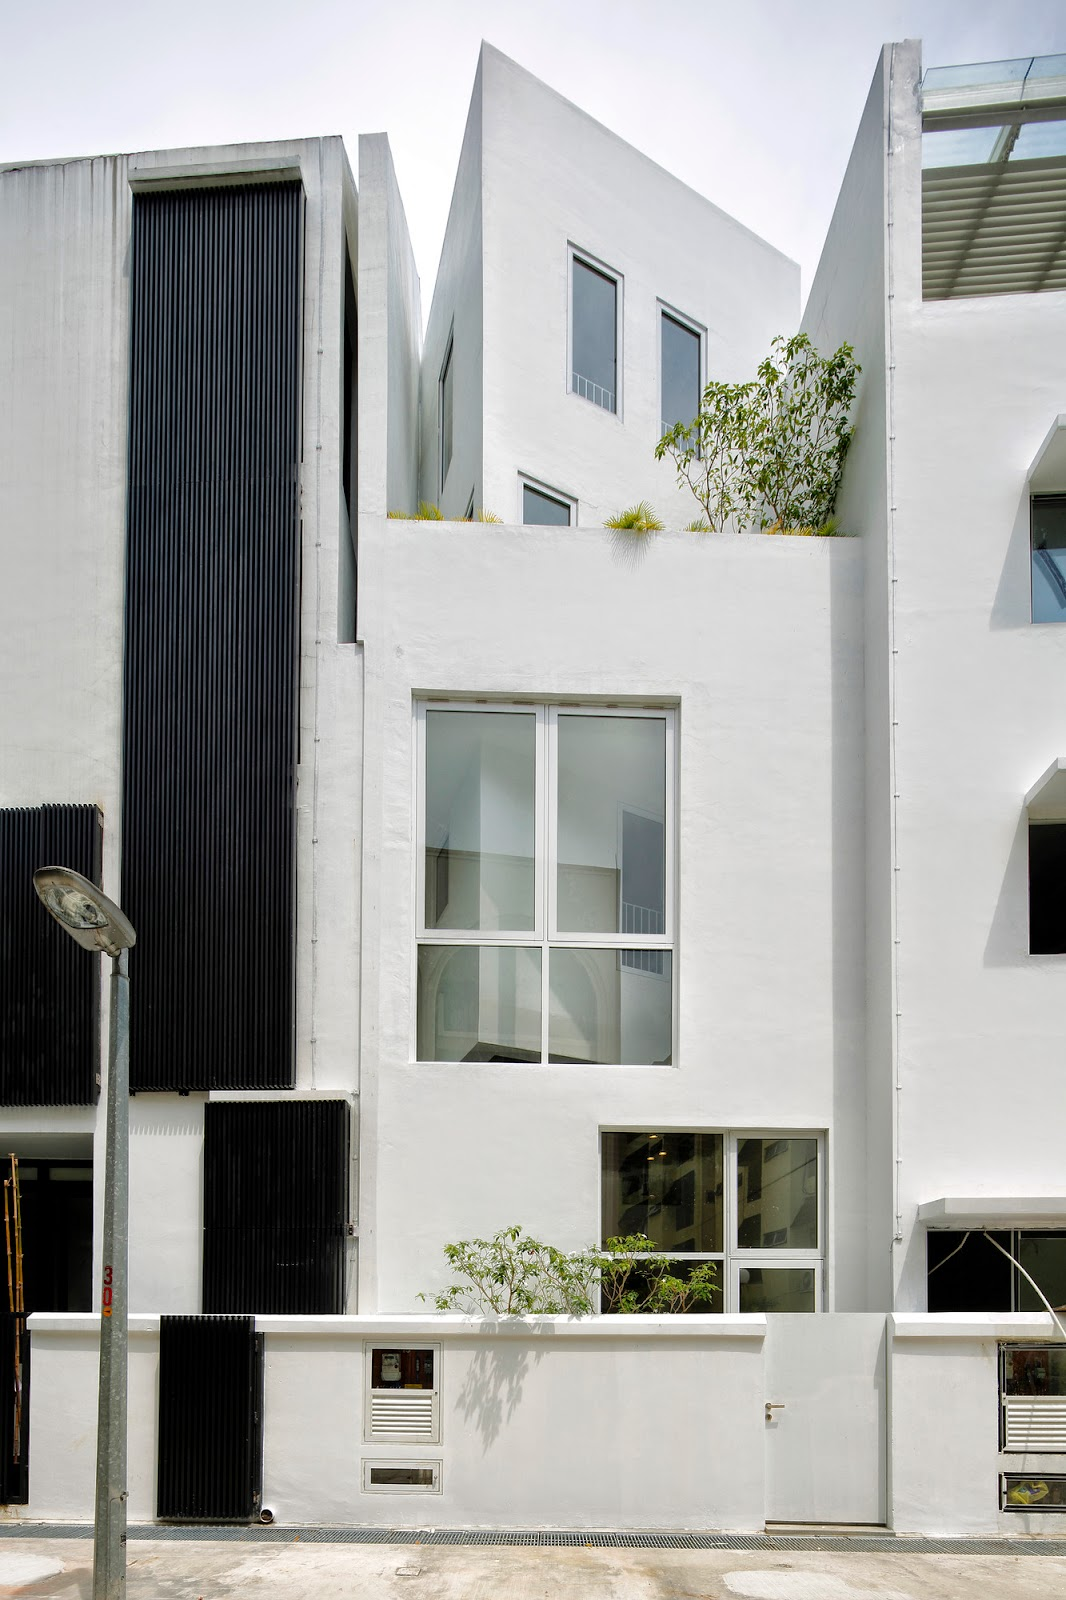 Strange 50 Stunning Houses In Singapore Urban Architecture Now Largest Home Design Picture Inspirations Pitcheantrous